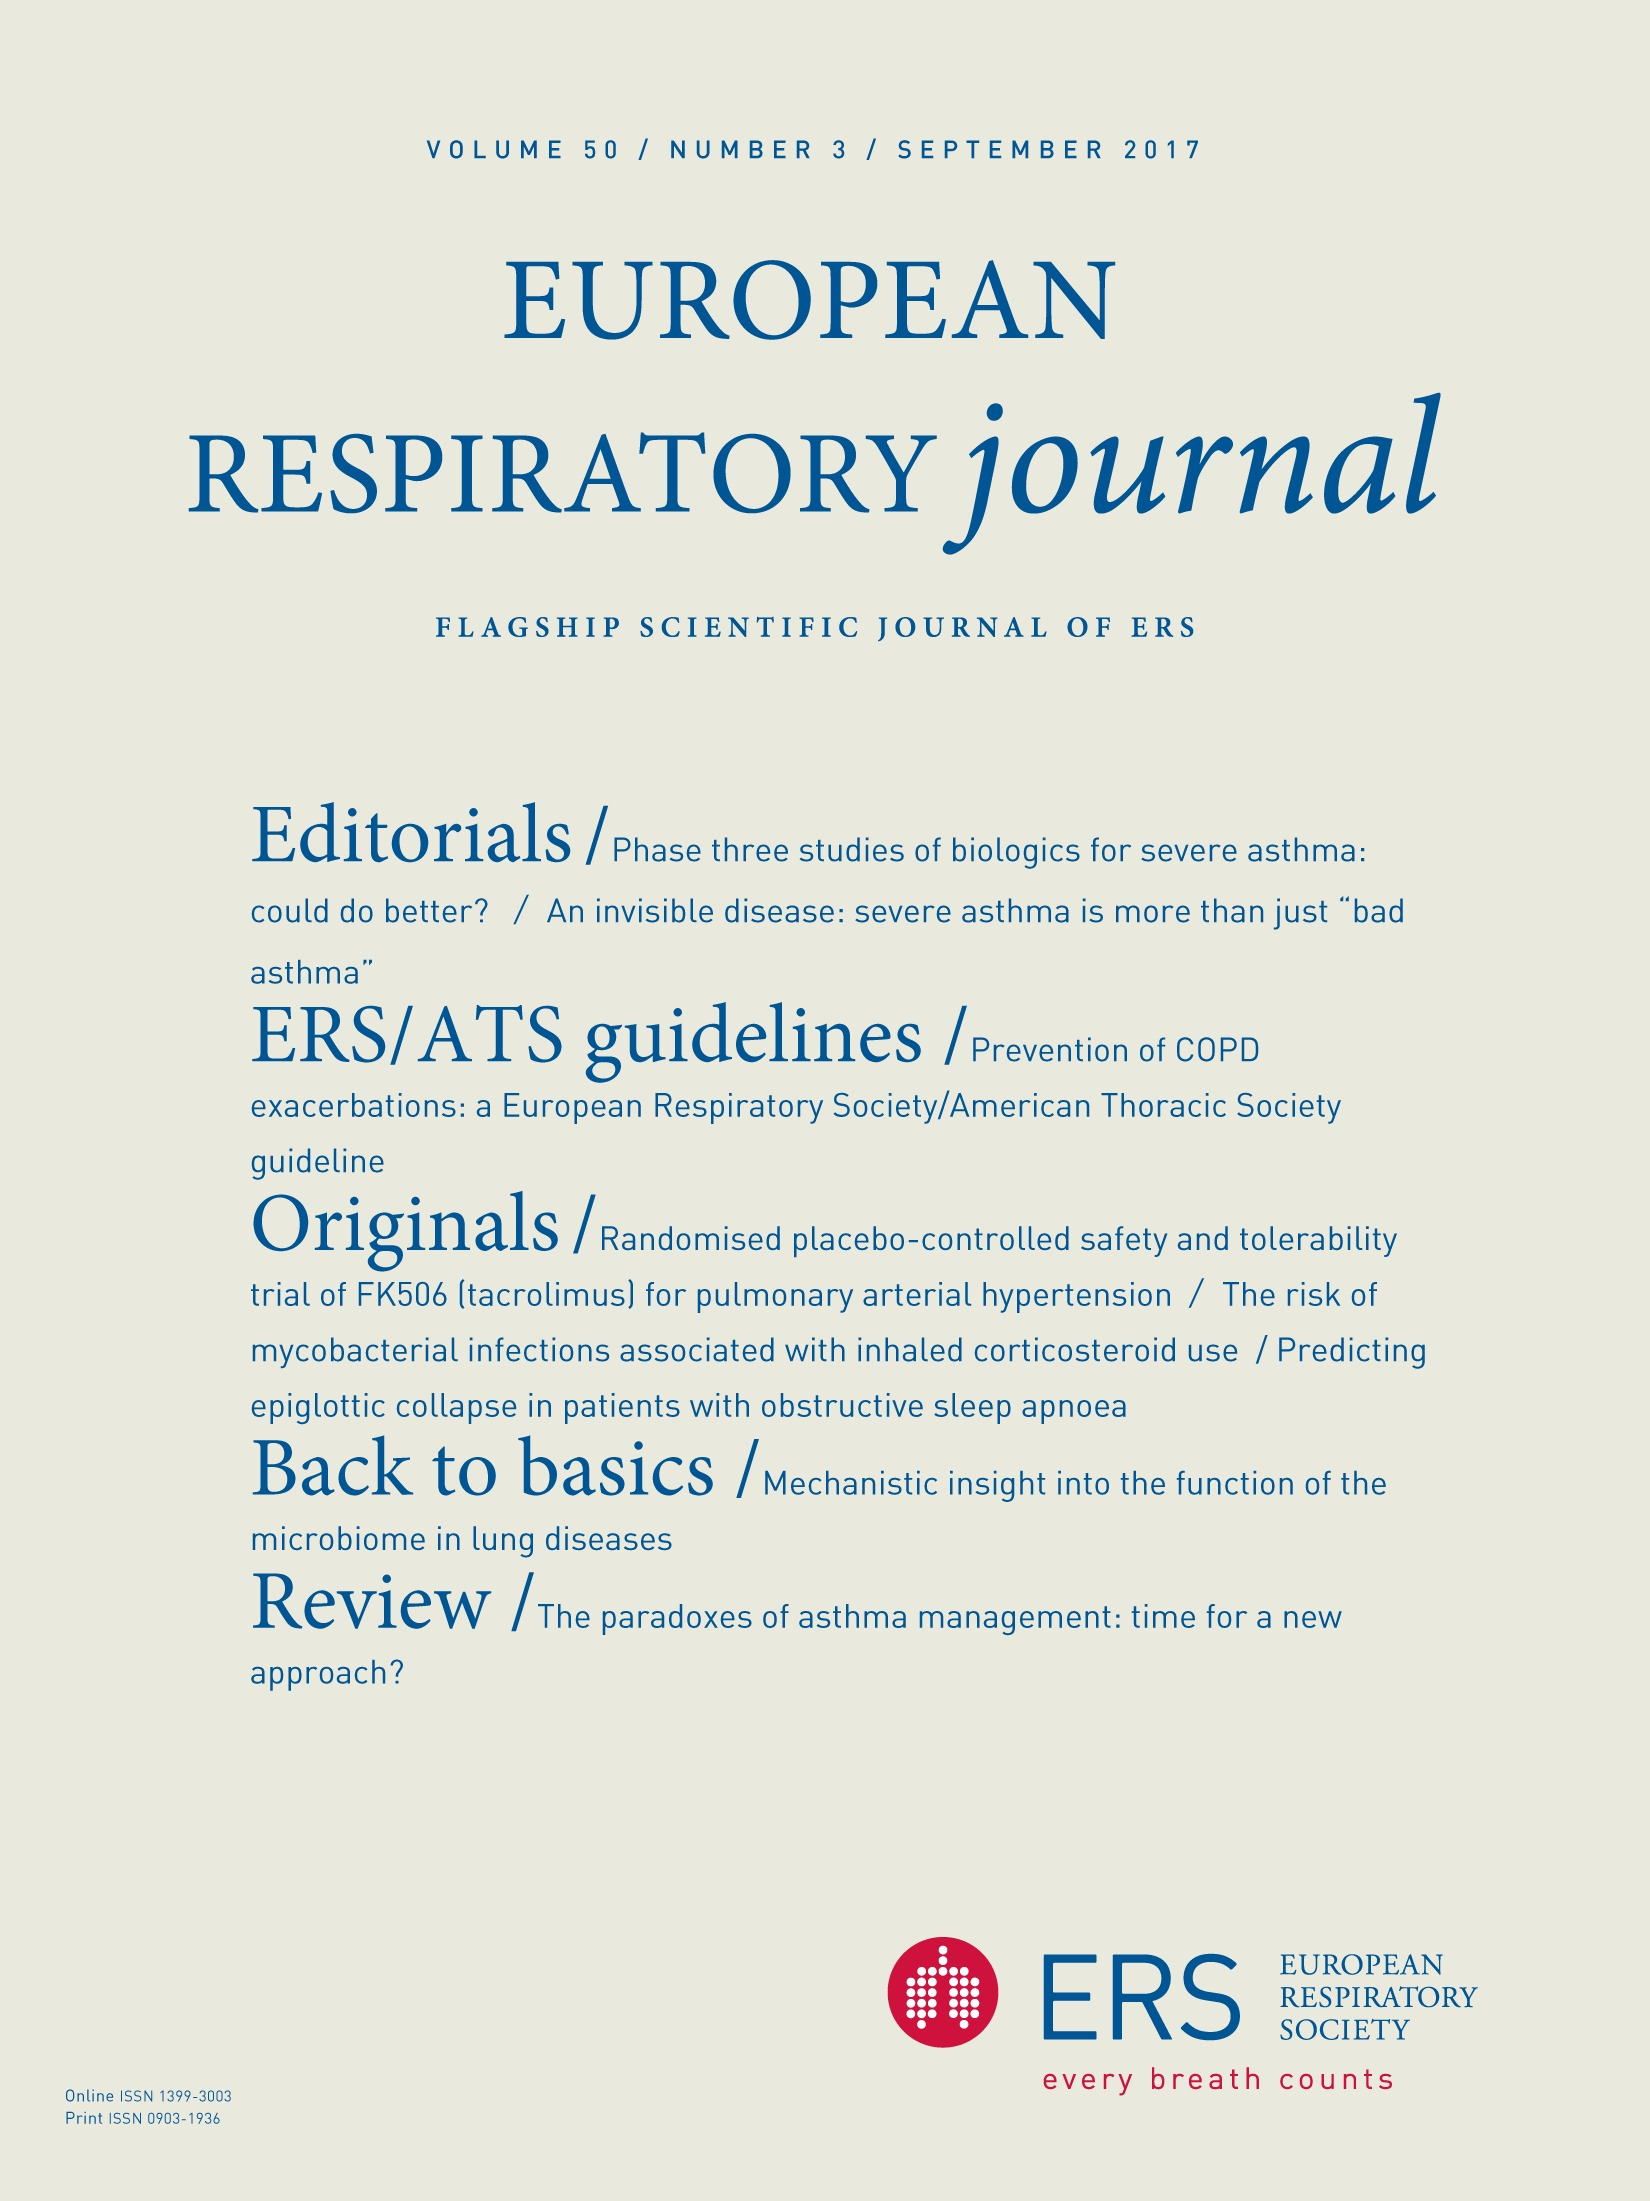 European Respiratory Society guidelines for the management of adult